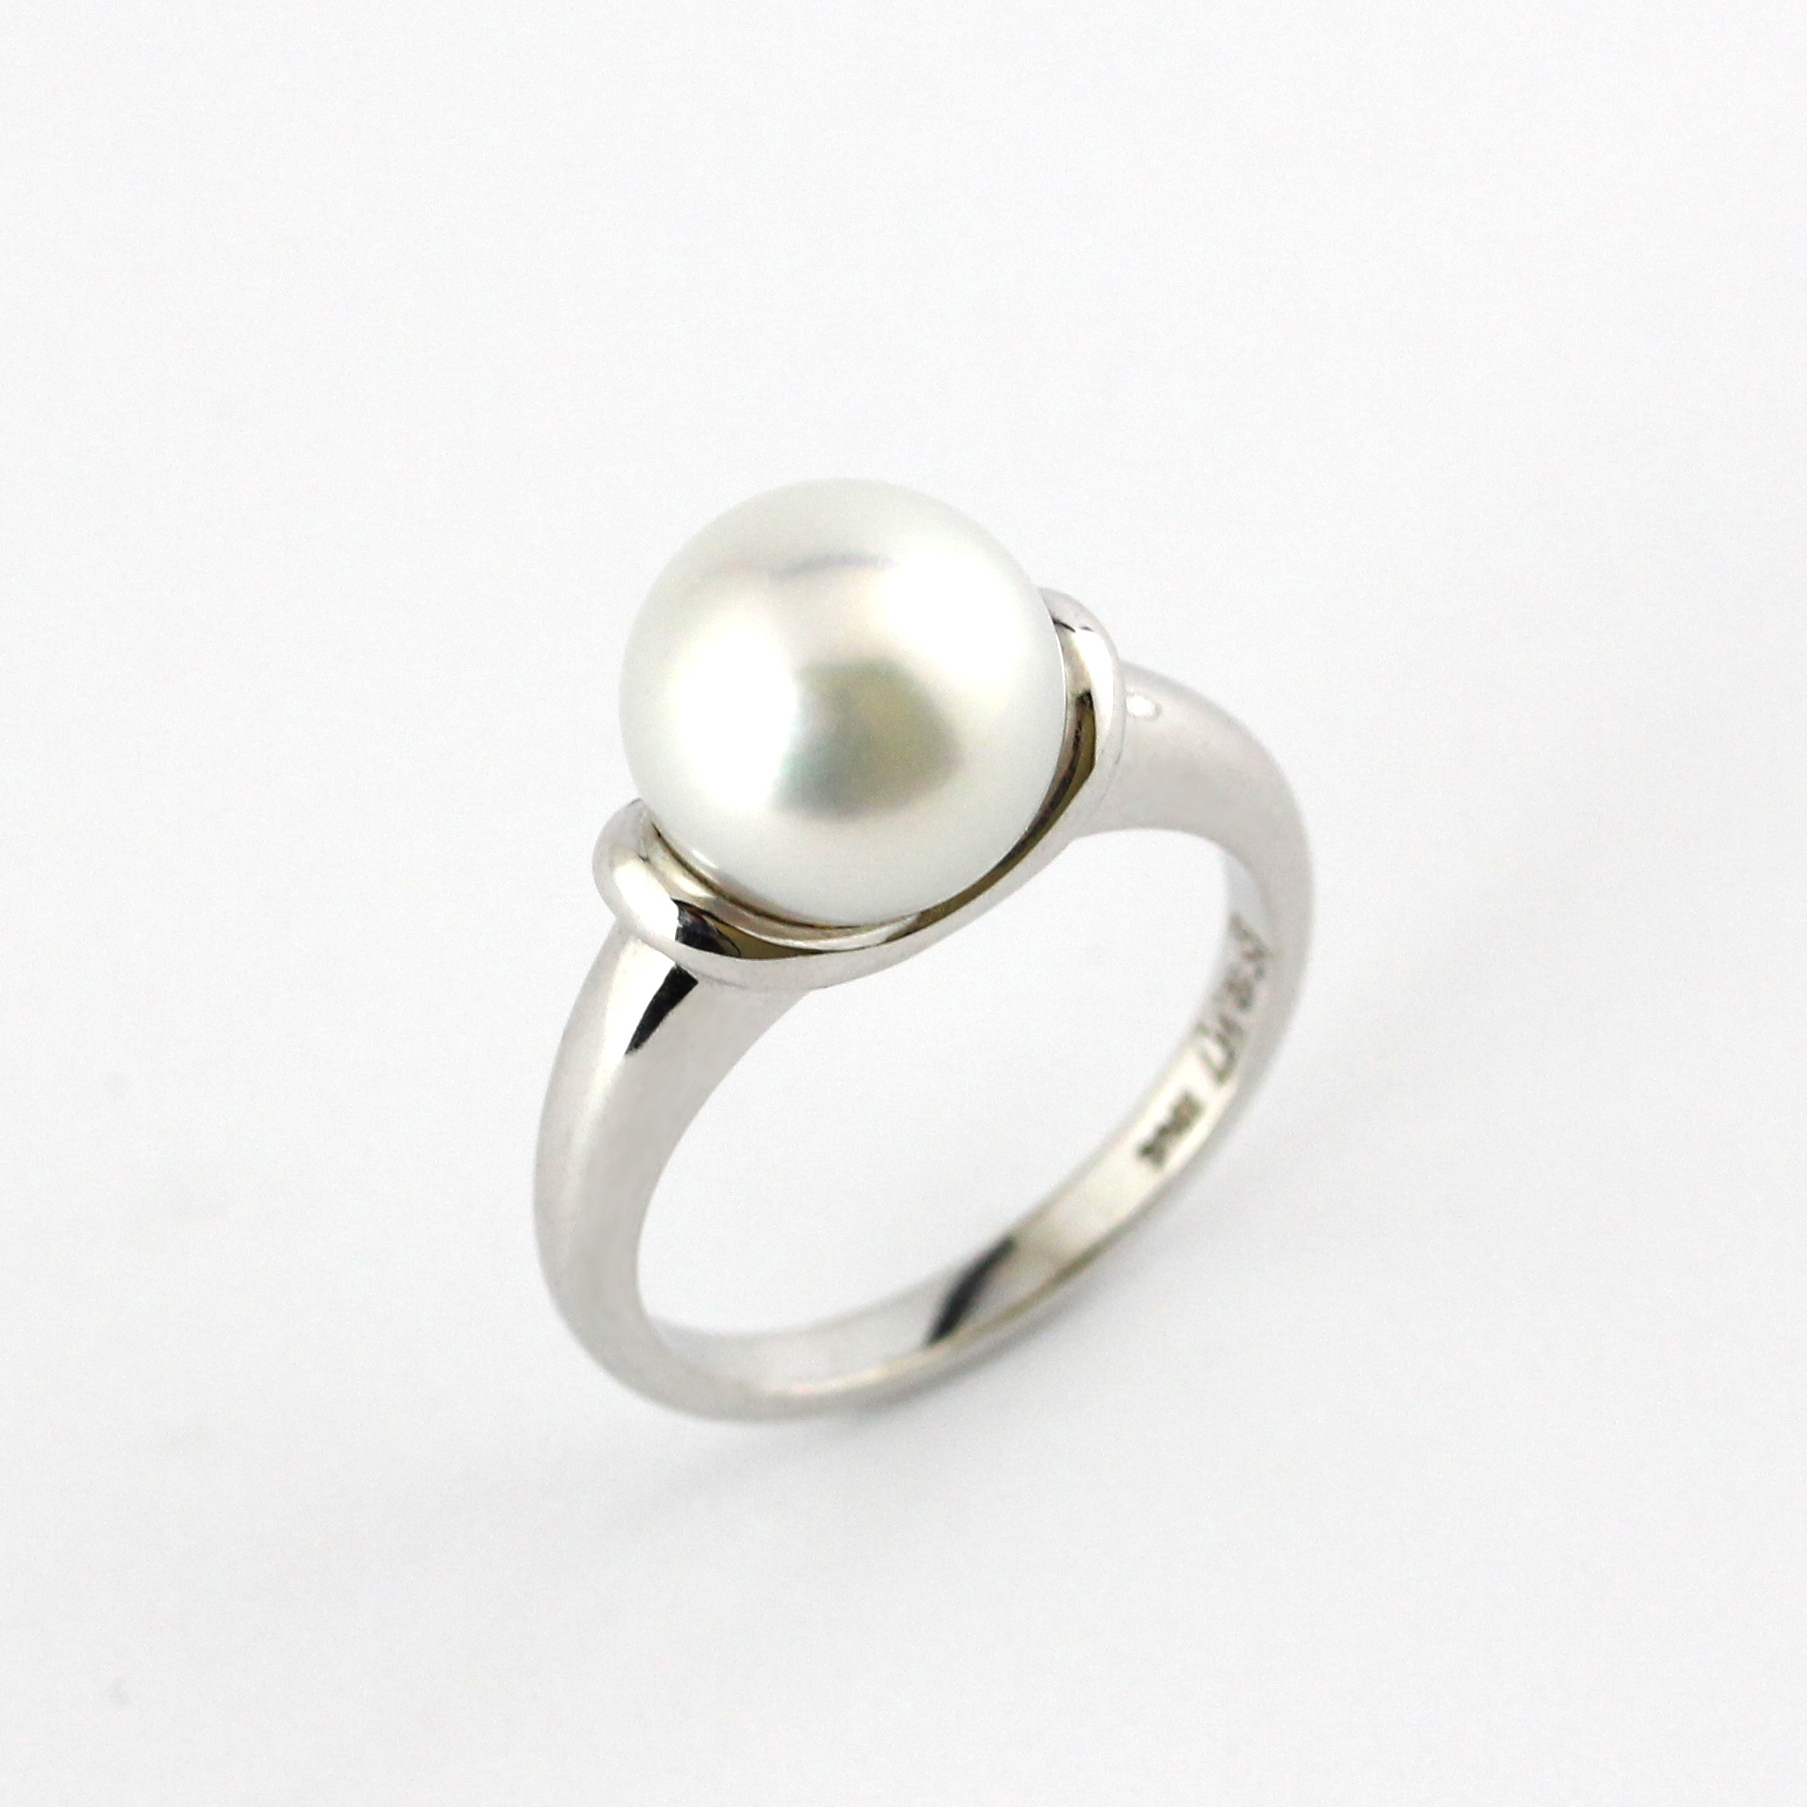 South sea pearl set in white gold ring.